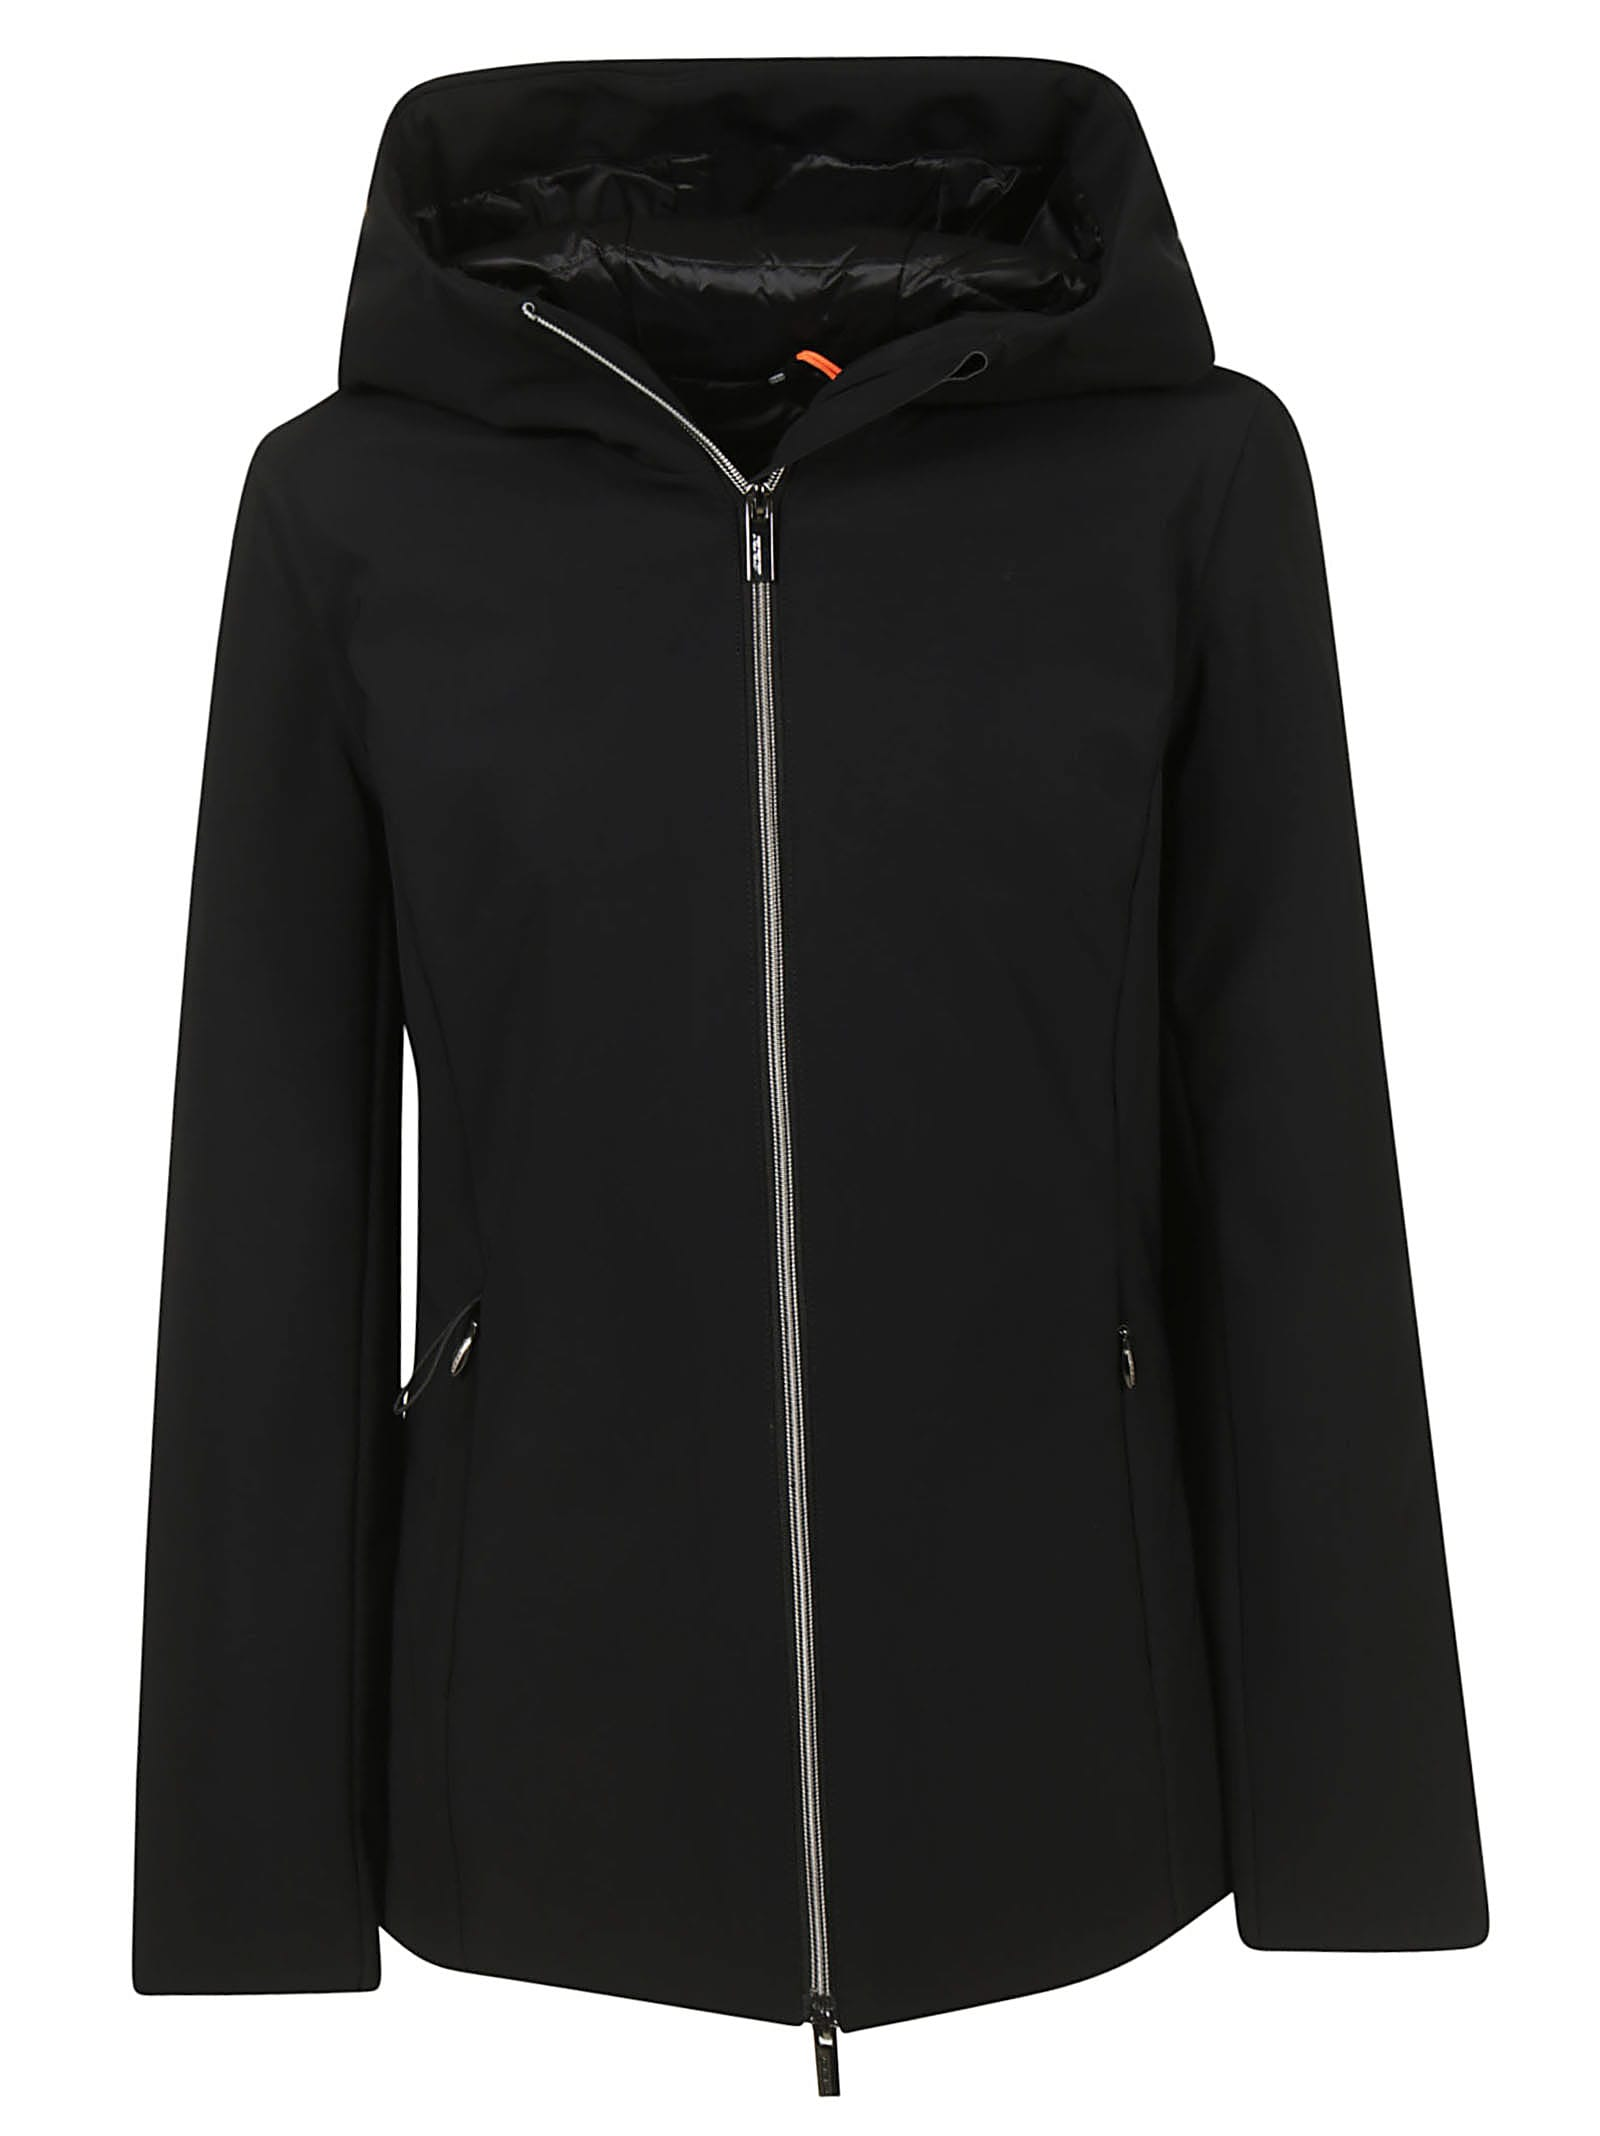 Photo of  RRD - Roberto Ricci Design Zipped-up Jacket- shop RRD - Roberto Ricci Design jackets online sales